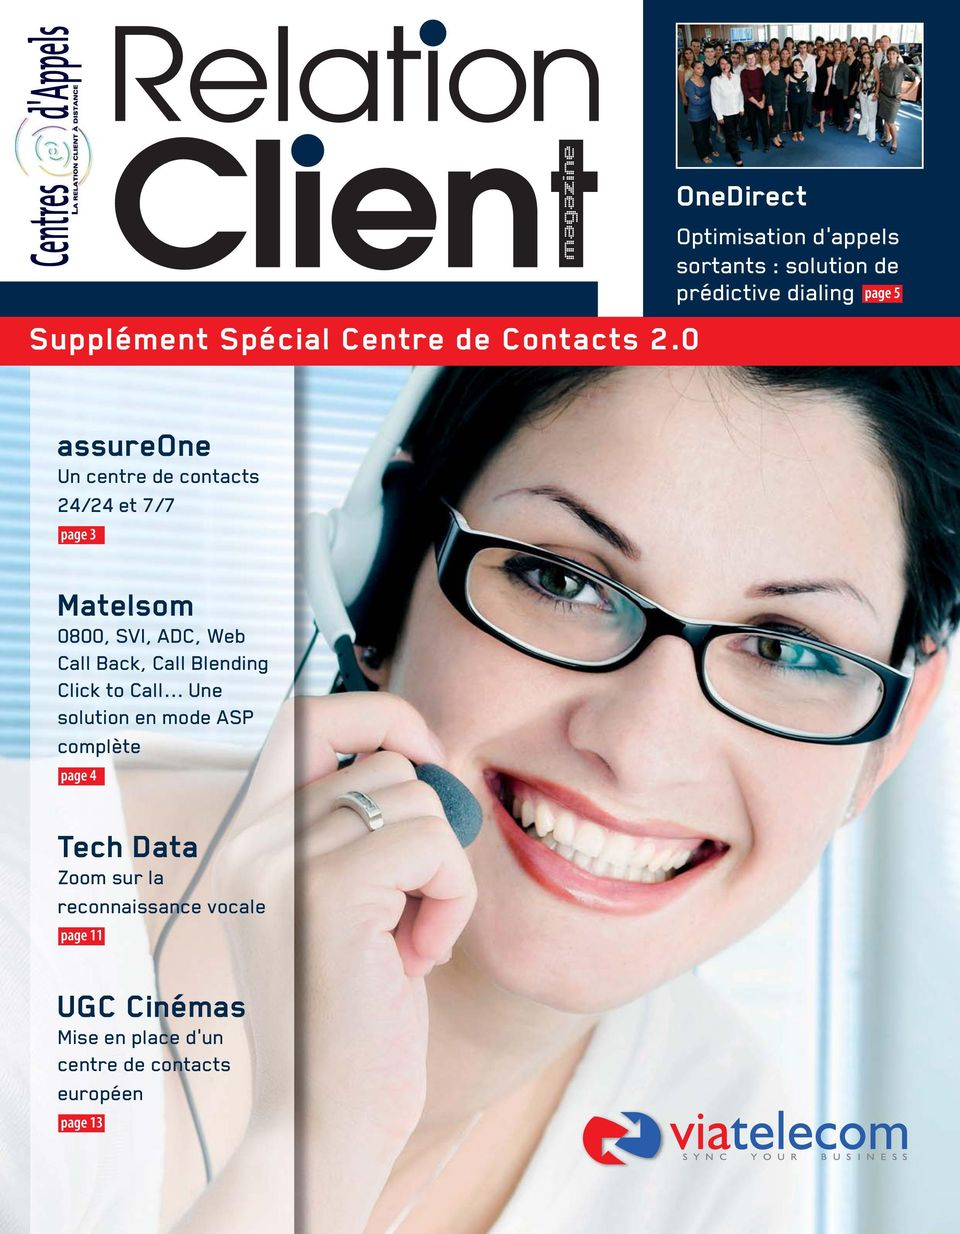 centre de contacts 24/24 et 7/7 page 3 Matelsom 0800, SVI, ADC, Web Call Back, Call Blending Click to